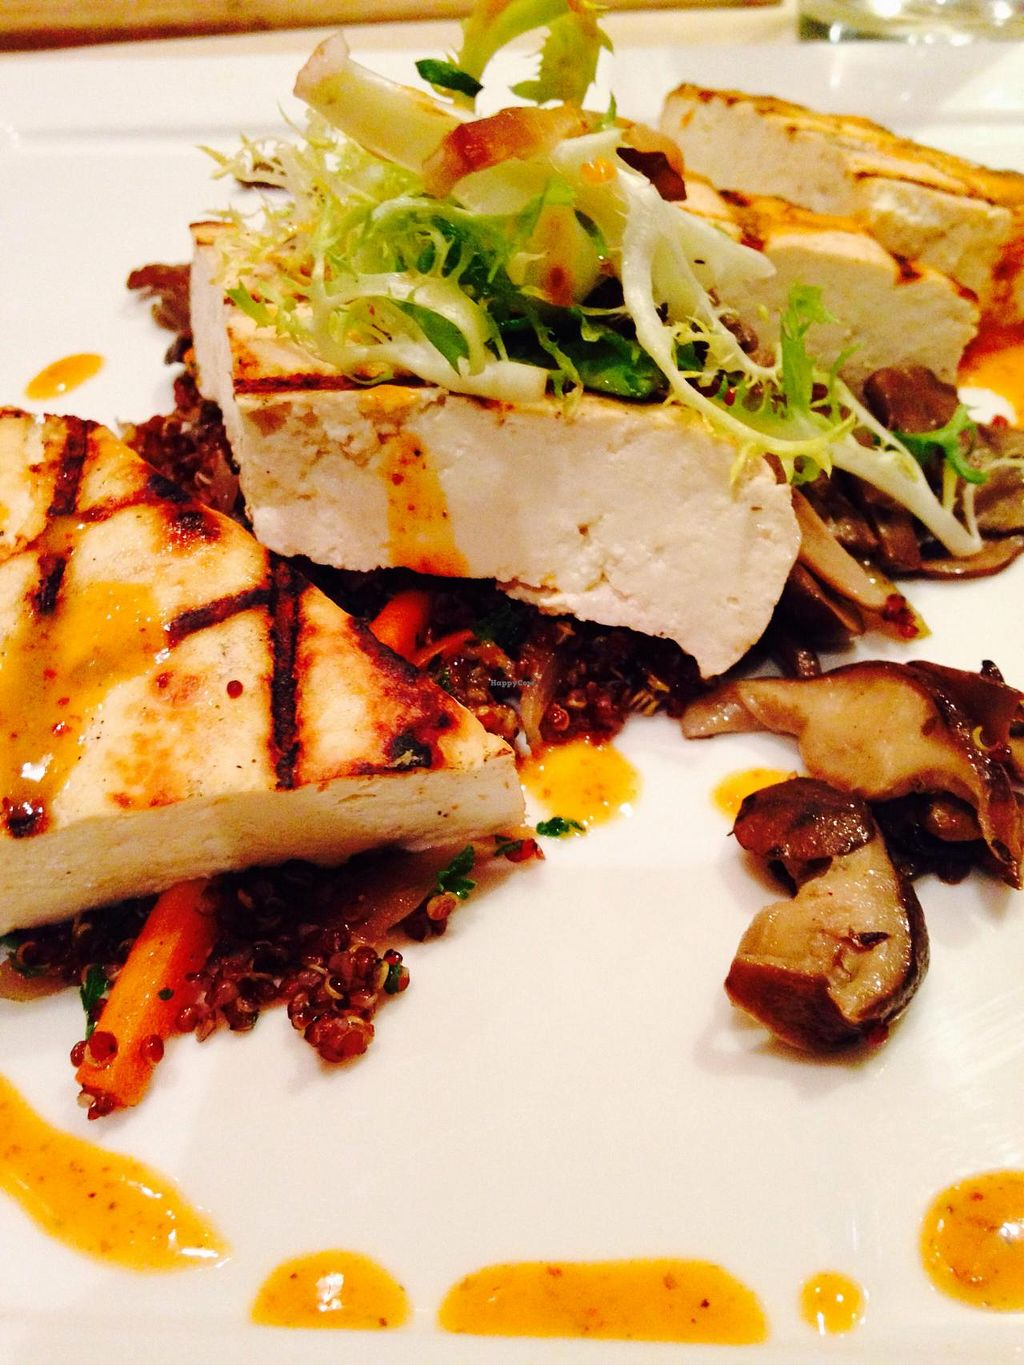 """Photo of Cedar Restaurant  by <a href=""""/members/profile/cookiem"""">cookiem</a> <br/>Grilled tofu marinated in citrus mustard <br/> April 8, 2015  - <a href='/contact/abuse/image/47991/98349'>Report</a>"""